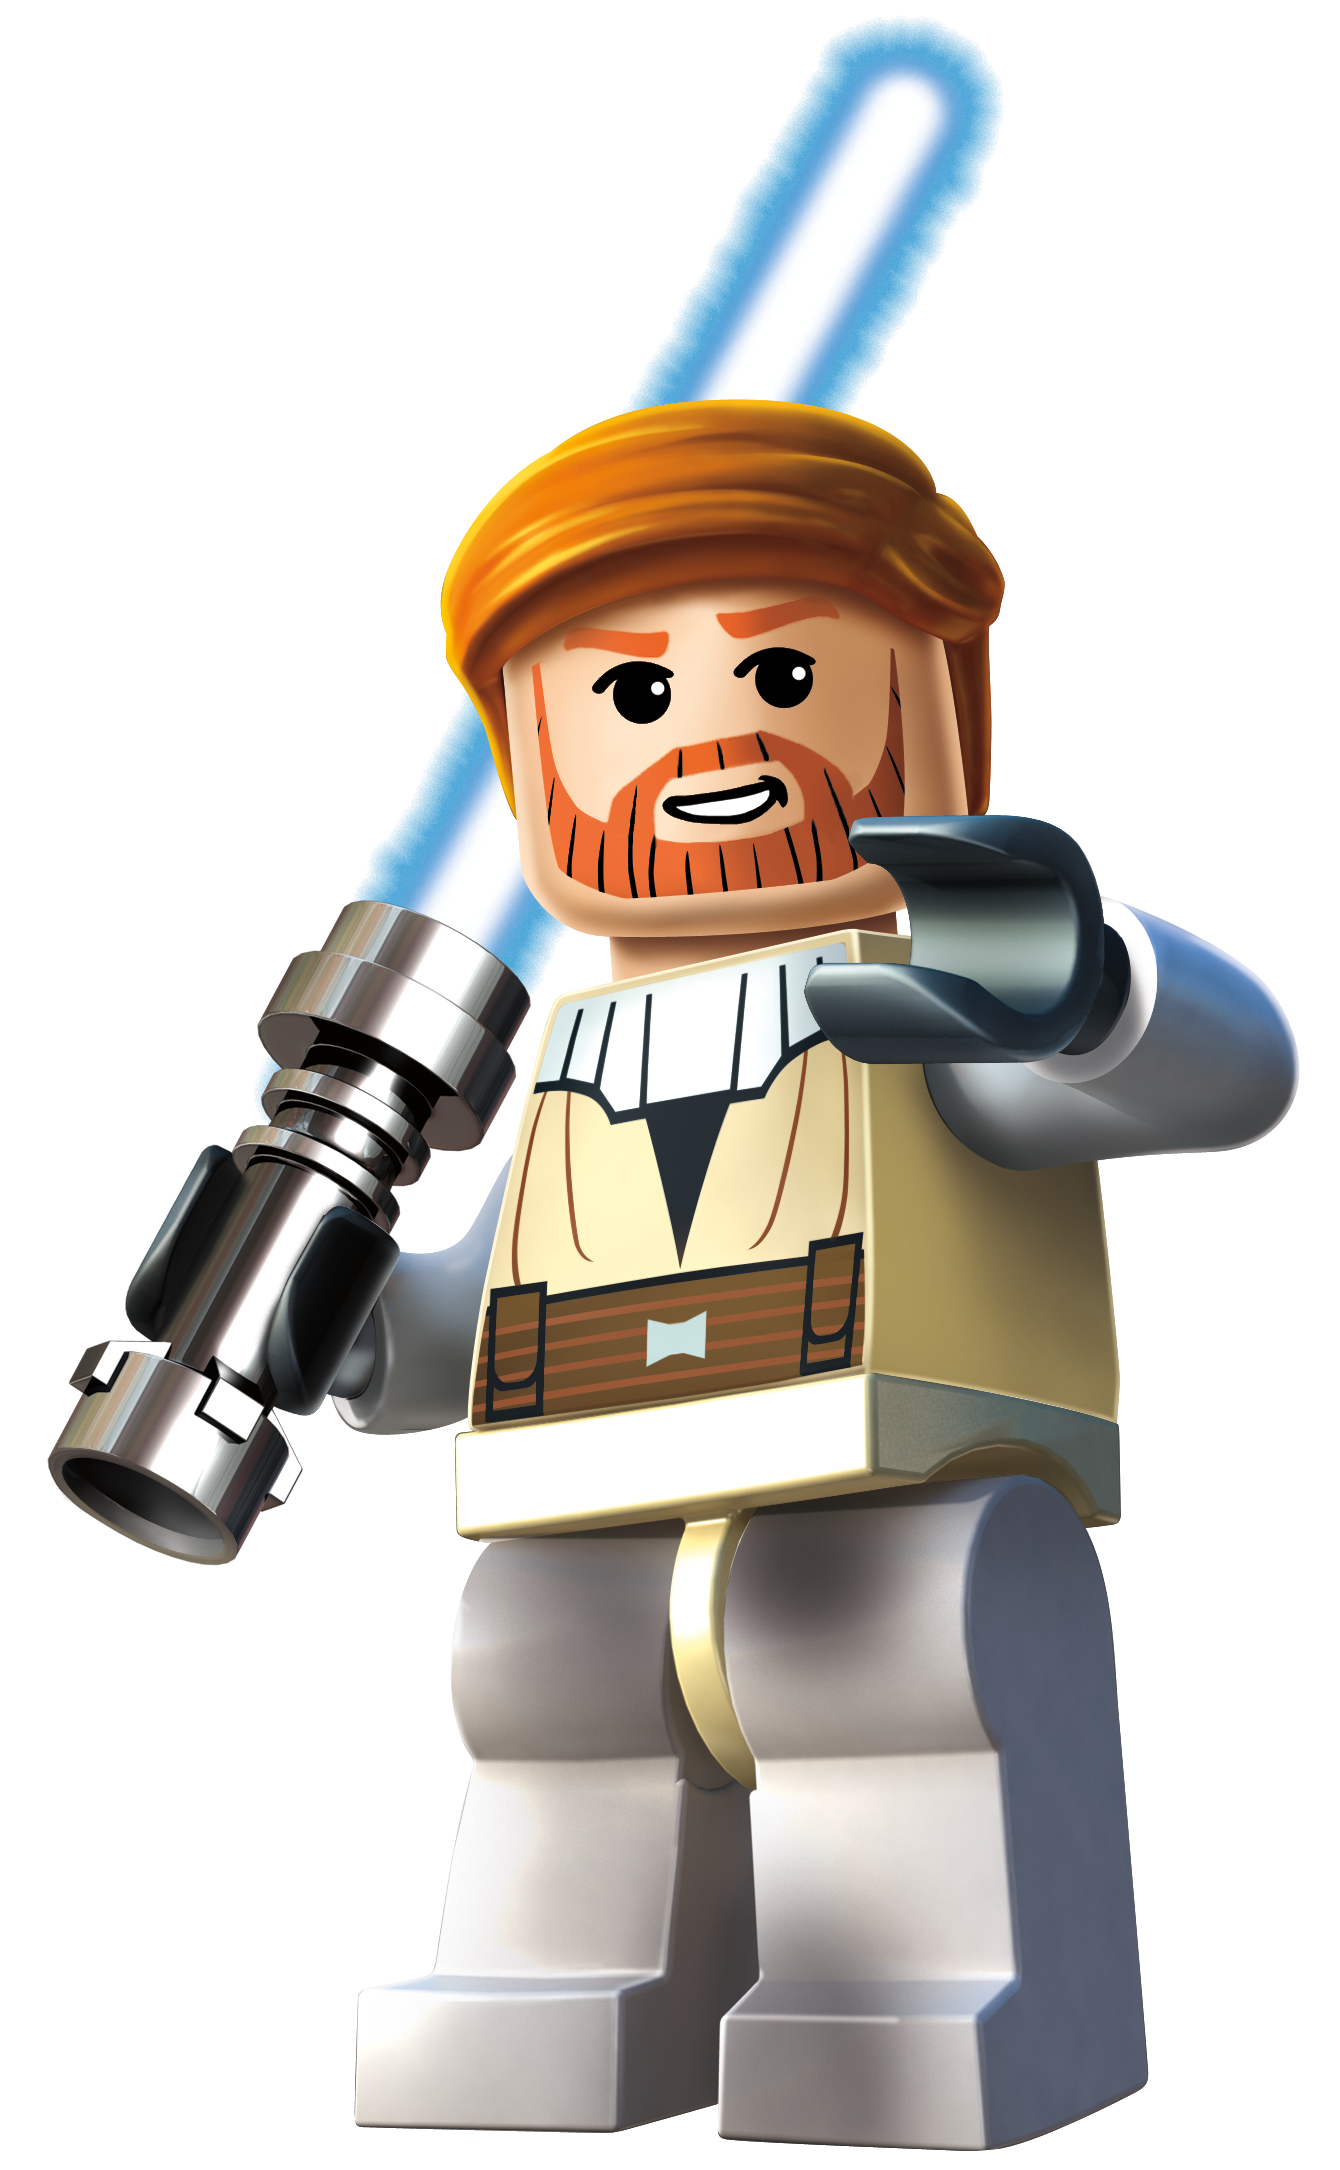 http://images1.wikia.nocookie.net/__cb20111102074928/lego/images/d/d4/Obi-Wan_LSW3.png